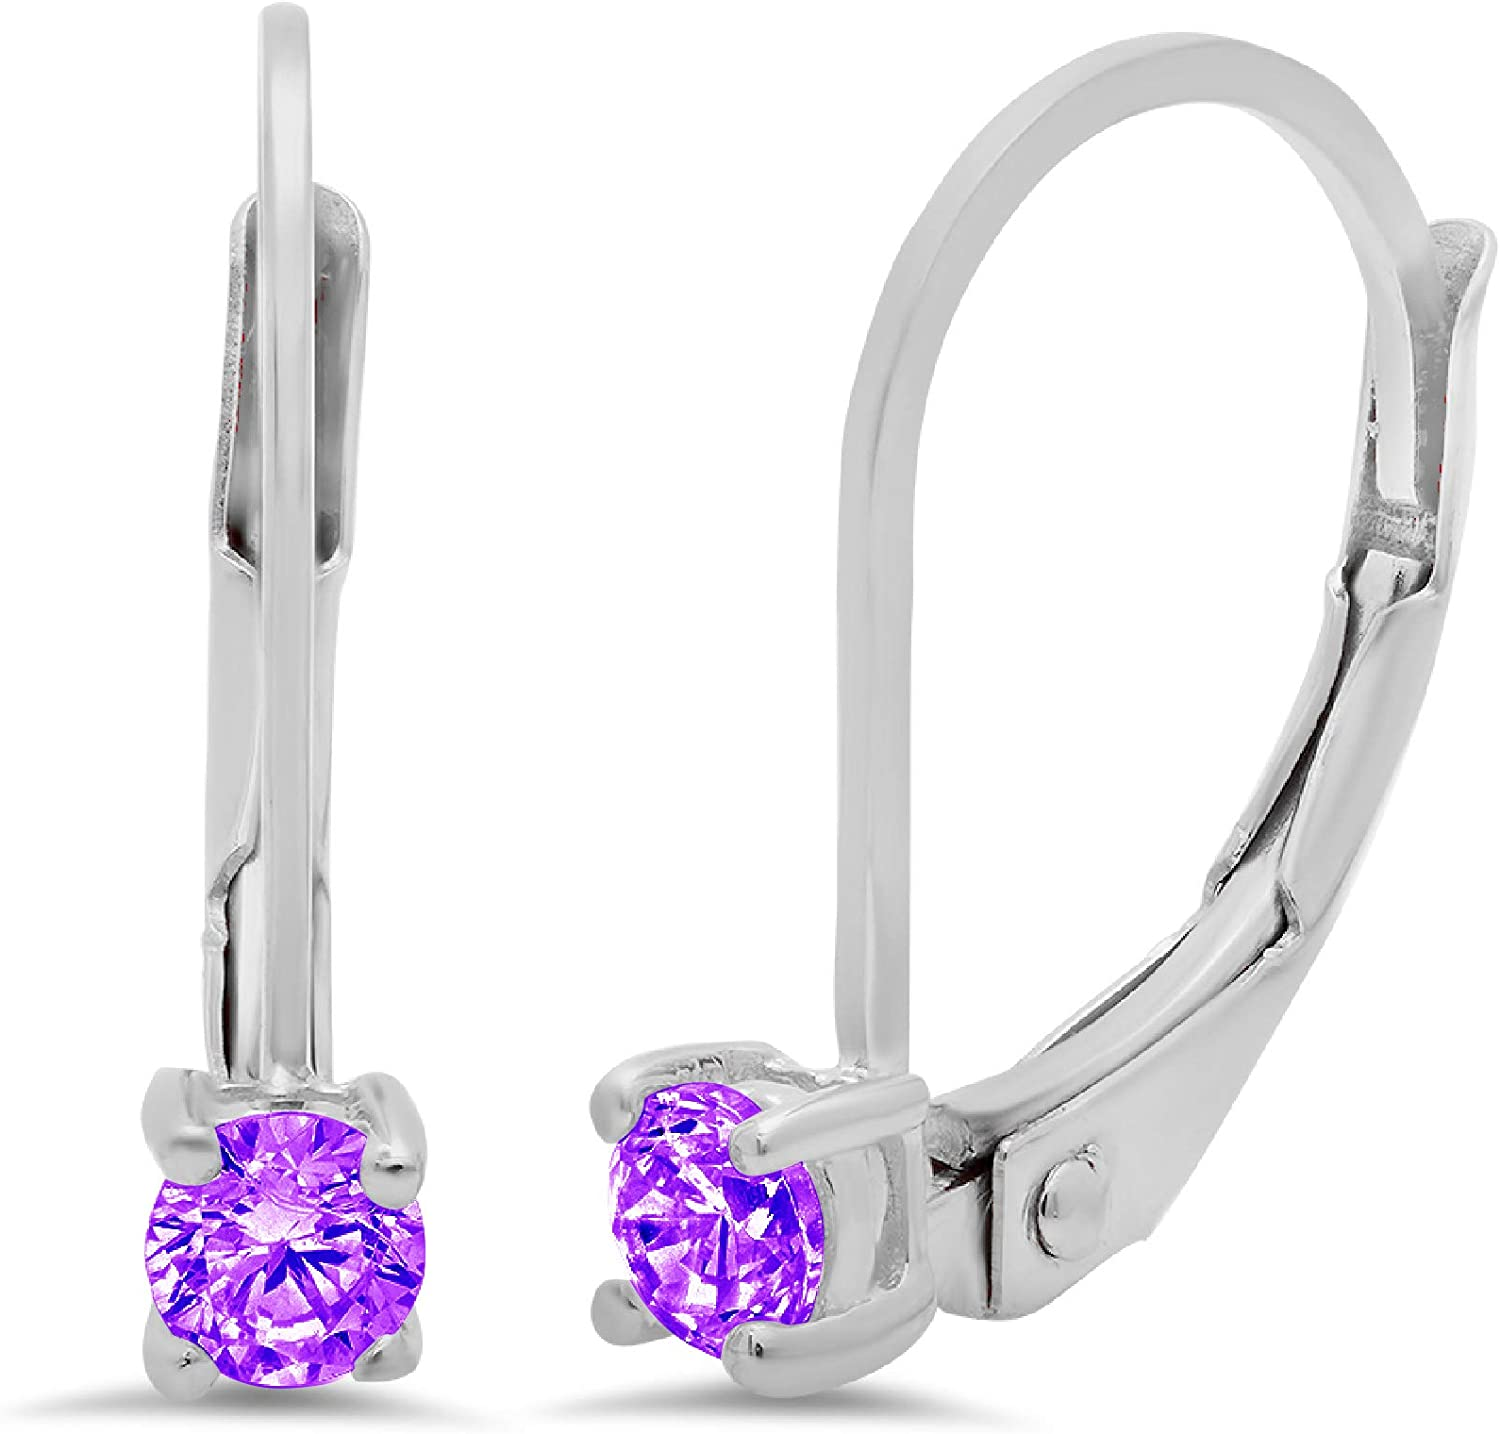 Clara Pucci 0.20 ct Brilliant Round Cut Solitaire VVS1 Flawless Natural Purple Amethyst Gemstone Pair of Lever back Drop Dangle Earrings Solid 18K White Gold